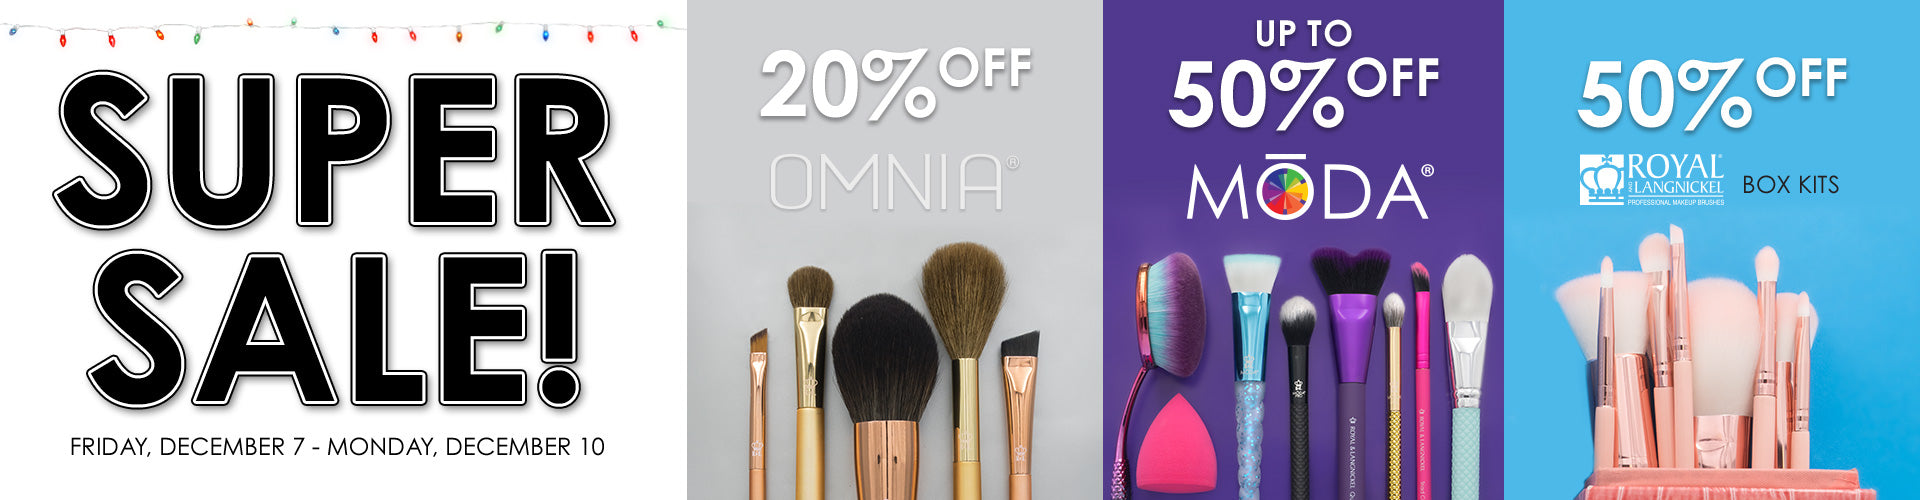 Super Sale 2018 - up to 50% off MODA, OMNIA and more! - ends Monday, December 10th at 10:00am CST